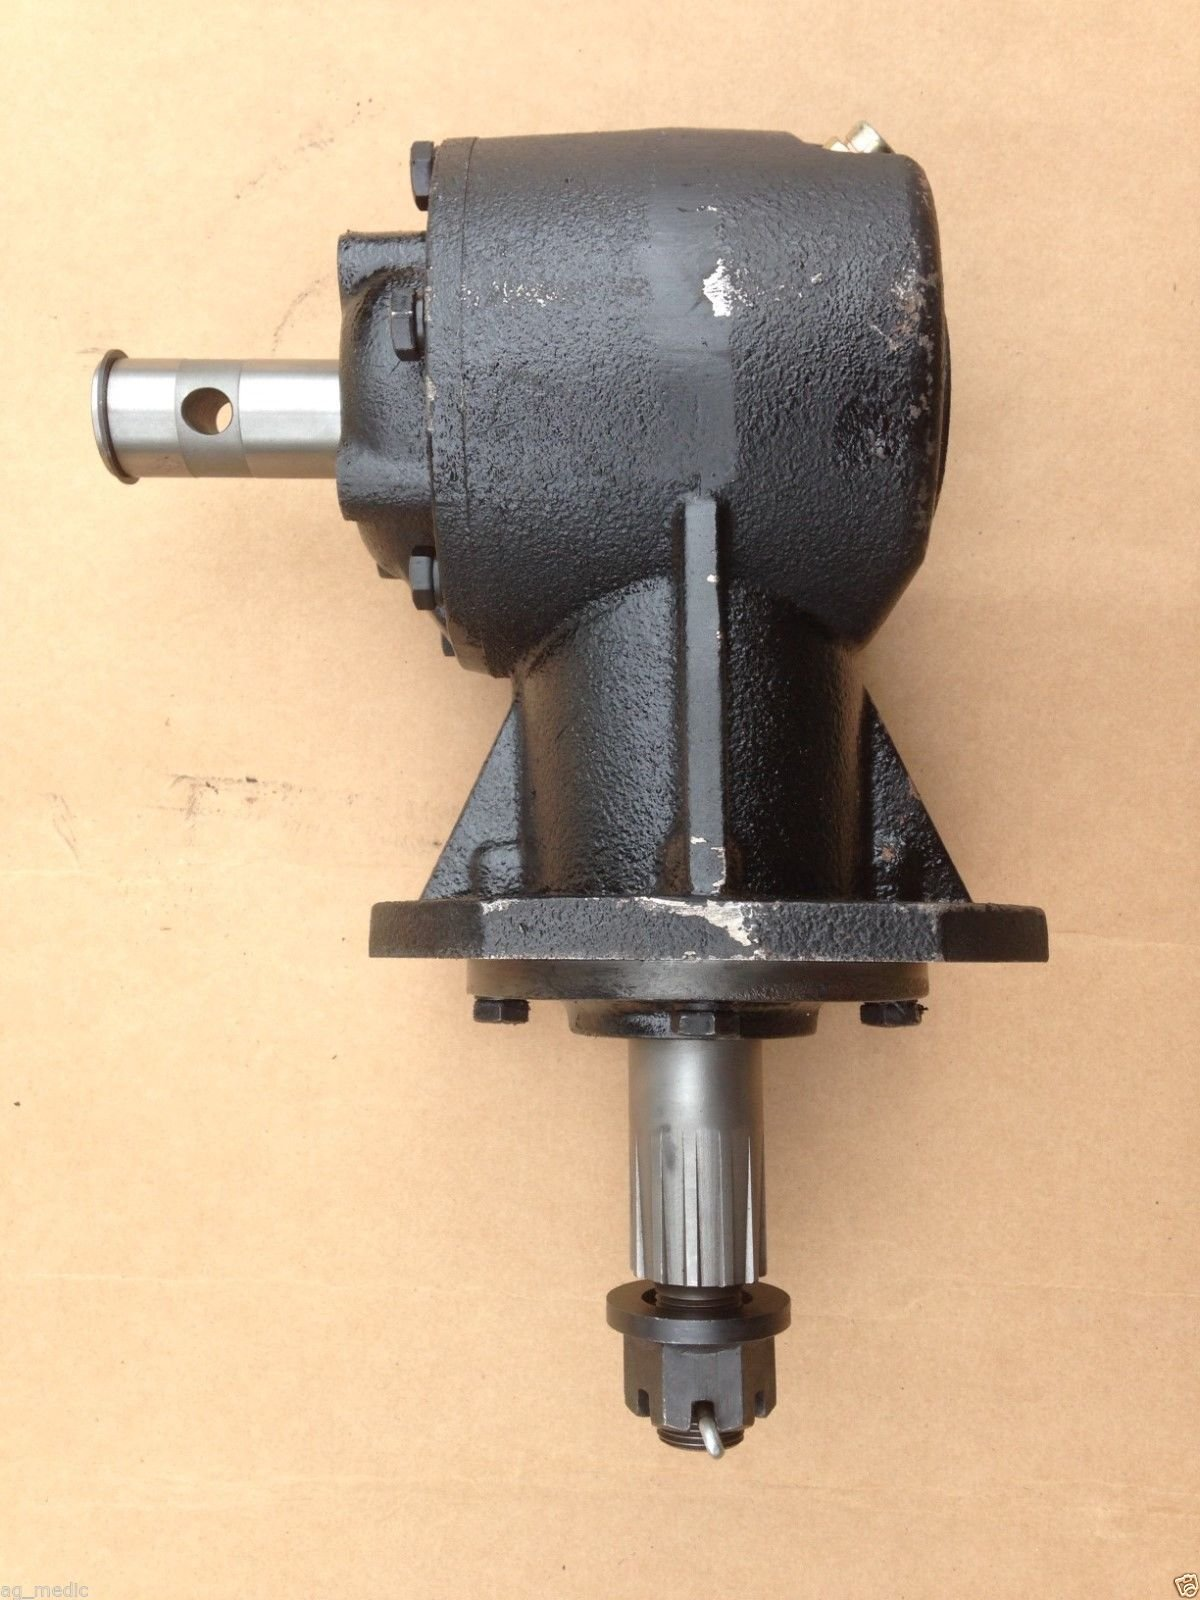 Replacement Gearbox for 4 ft Cut King KutterRotary Cutter code 184000